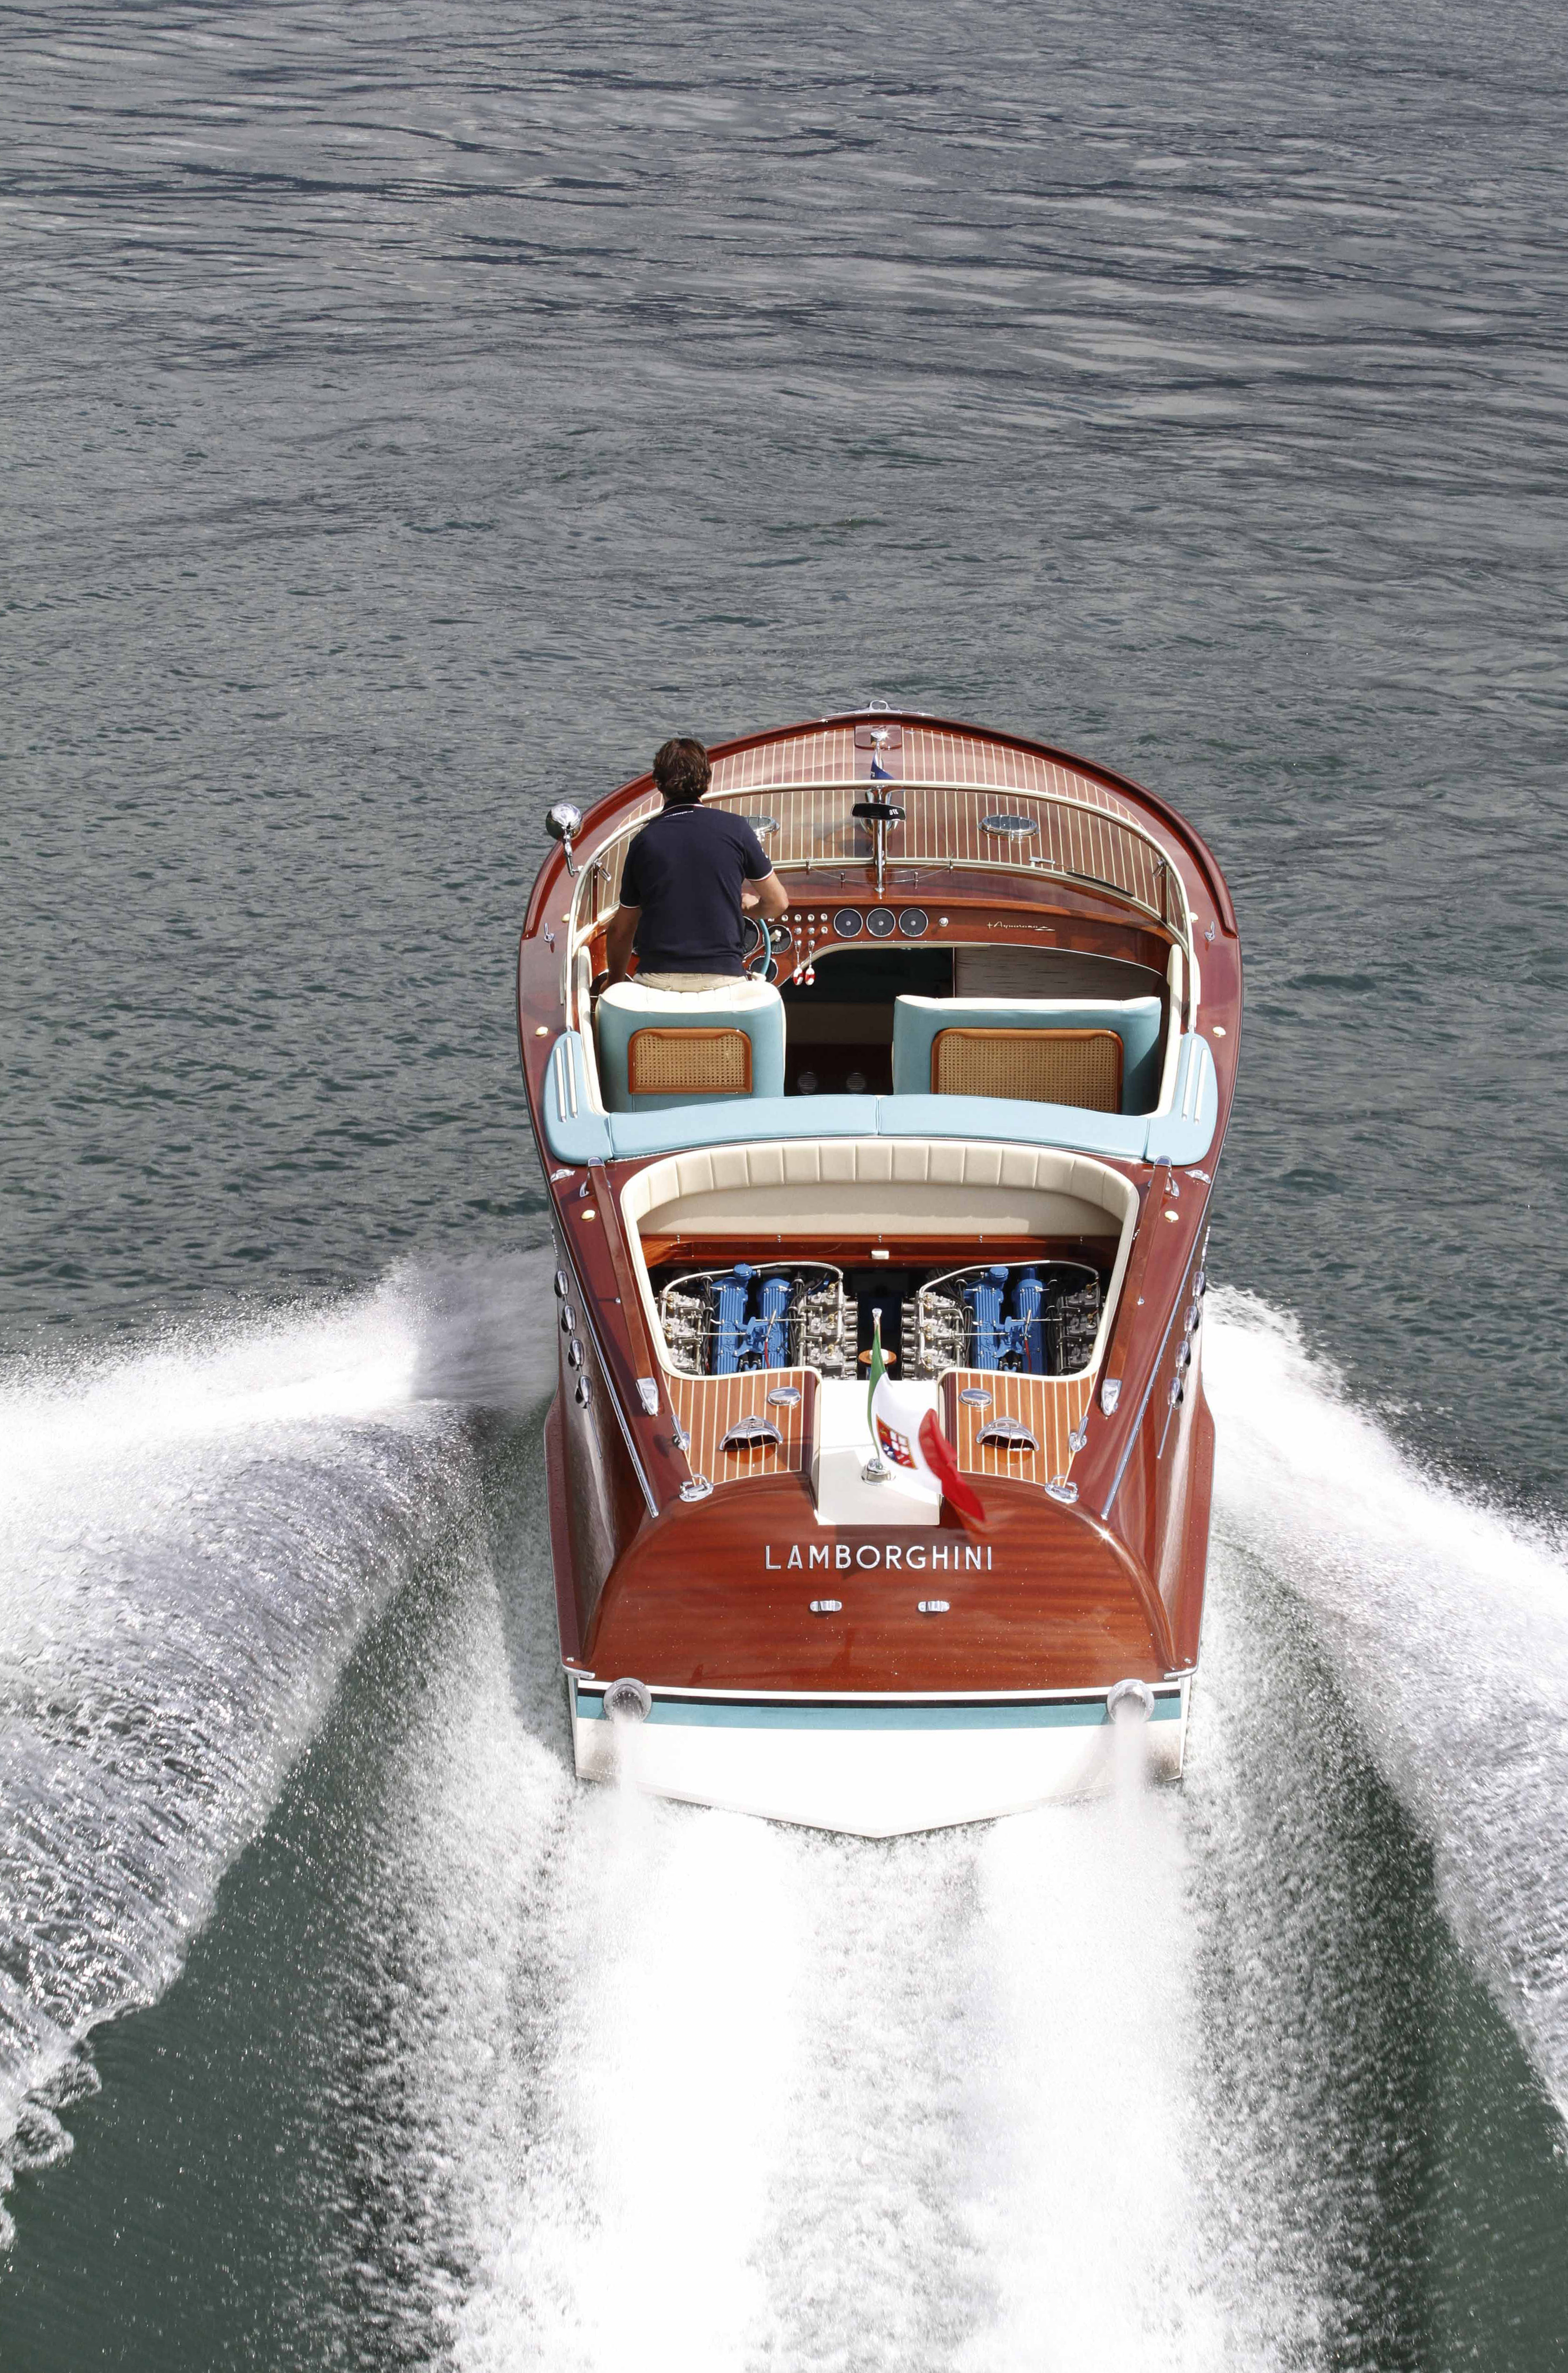 030517 Riva Aquarama Lamborghini To Go On Display In